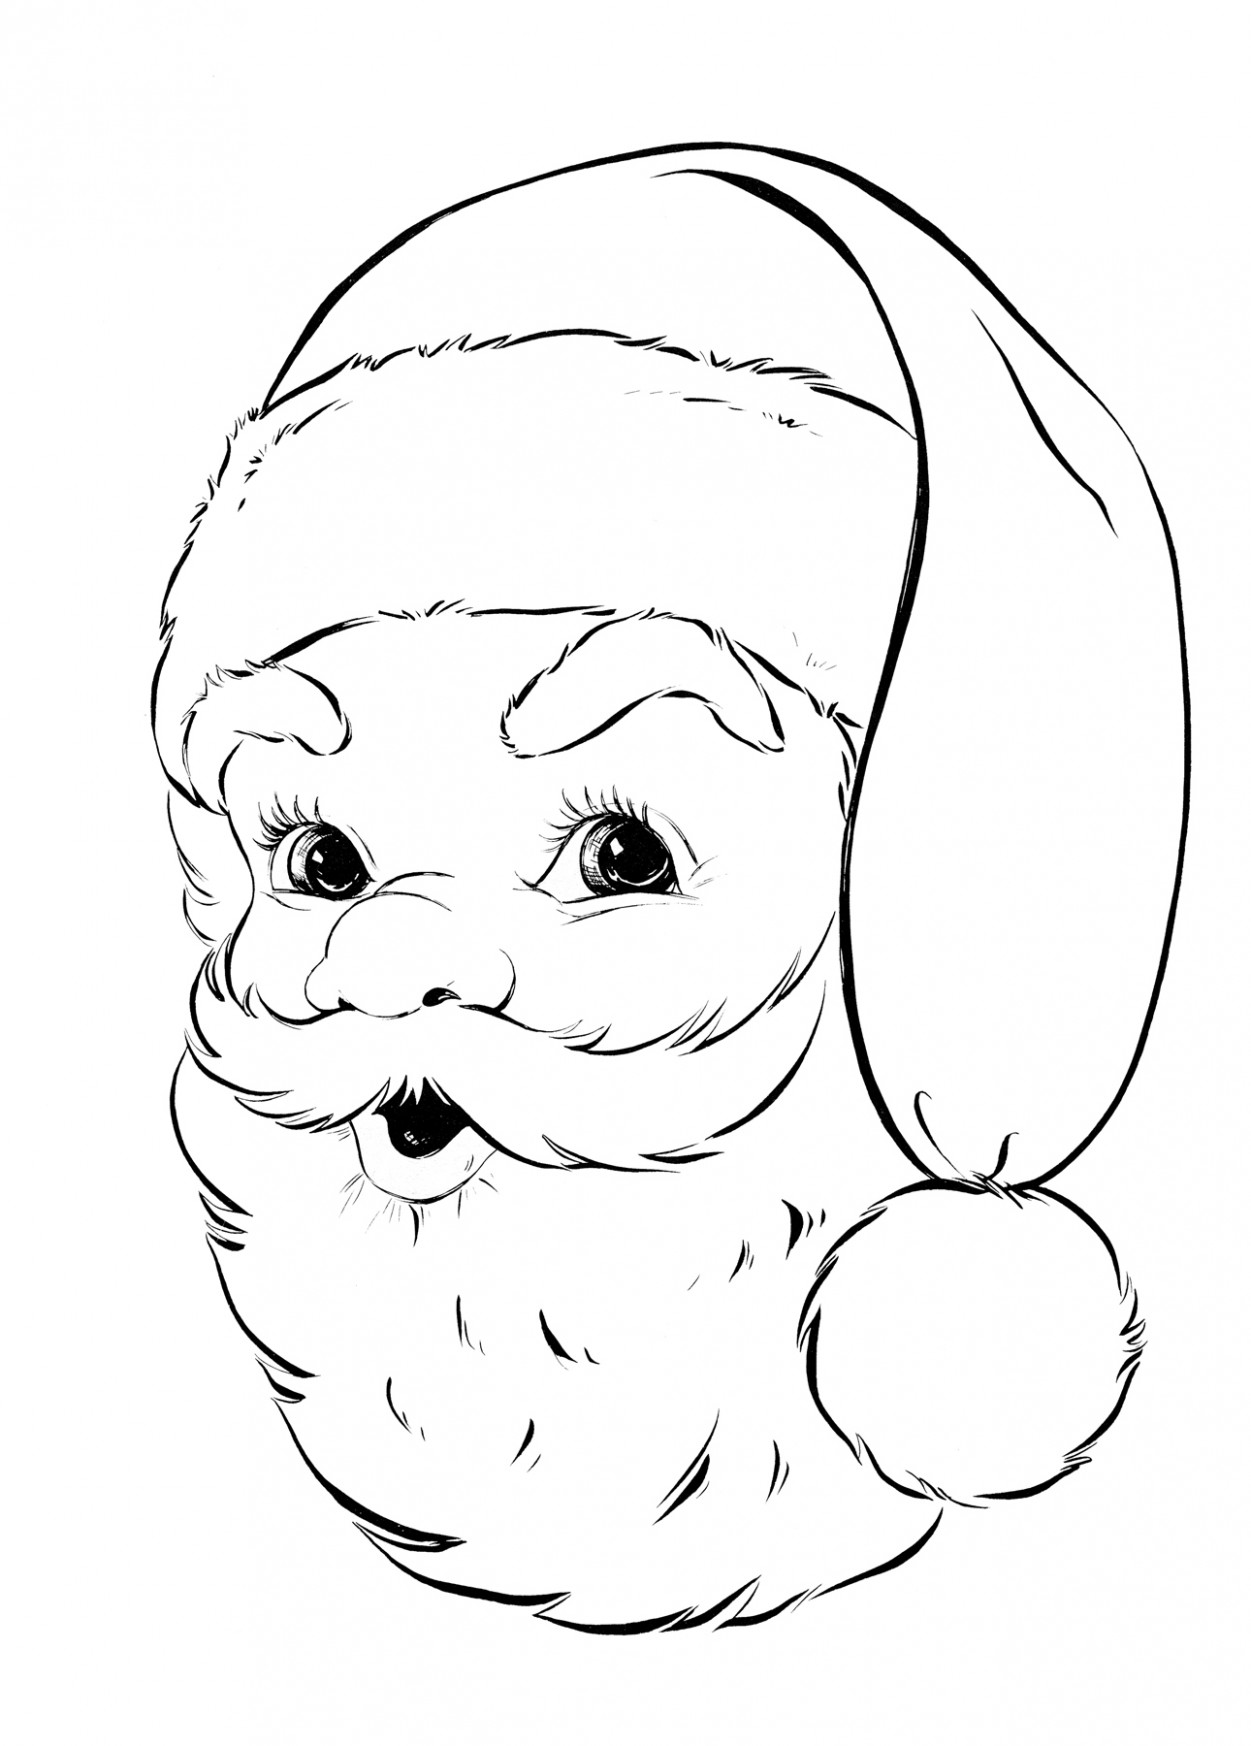 Retro Santa Coloring Page - The Graphics Fairy